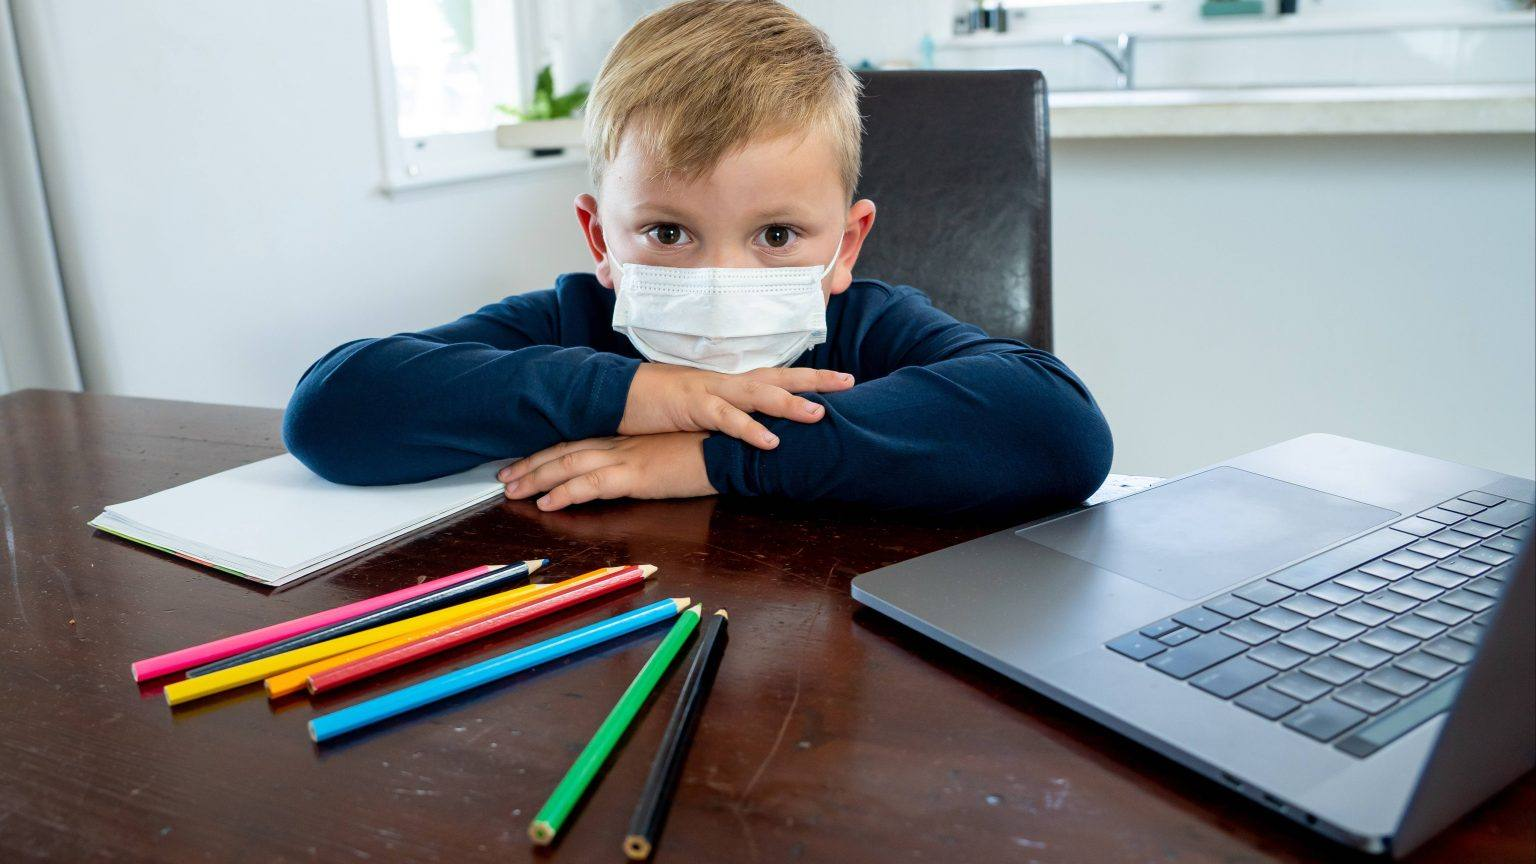 a-little-white-boy-looking-sad-and-lonely-wearing-a-mask-and-sitting-at-a-desk-with-school-paper-colored-pencils-and-a-laptop-computer-16x9-1-1536x864